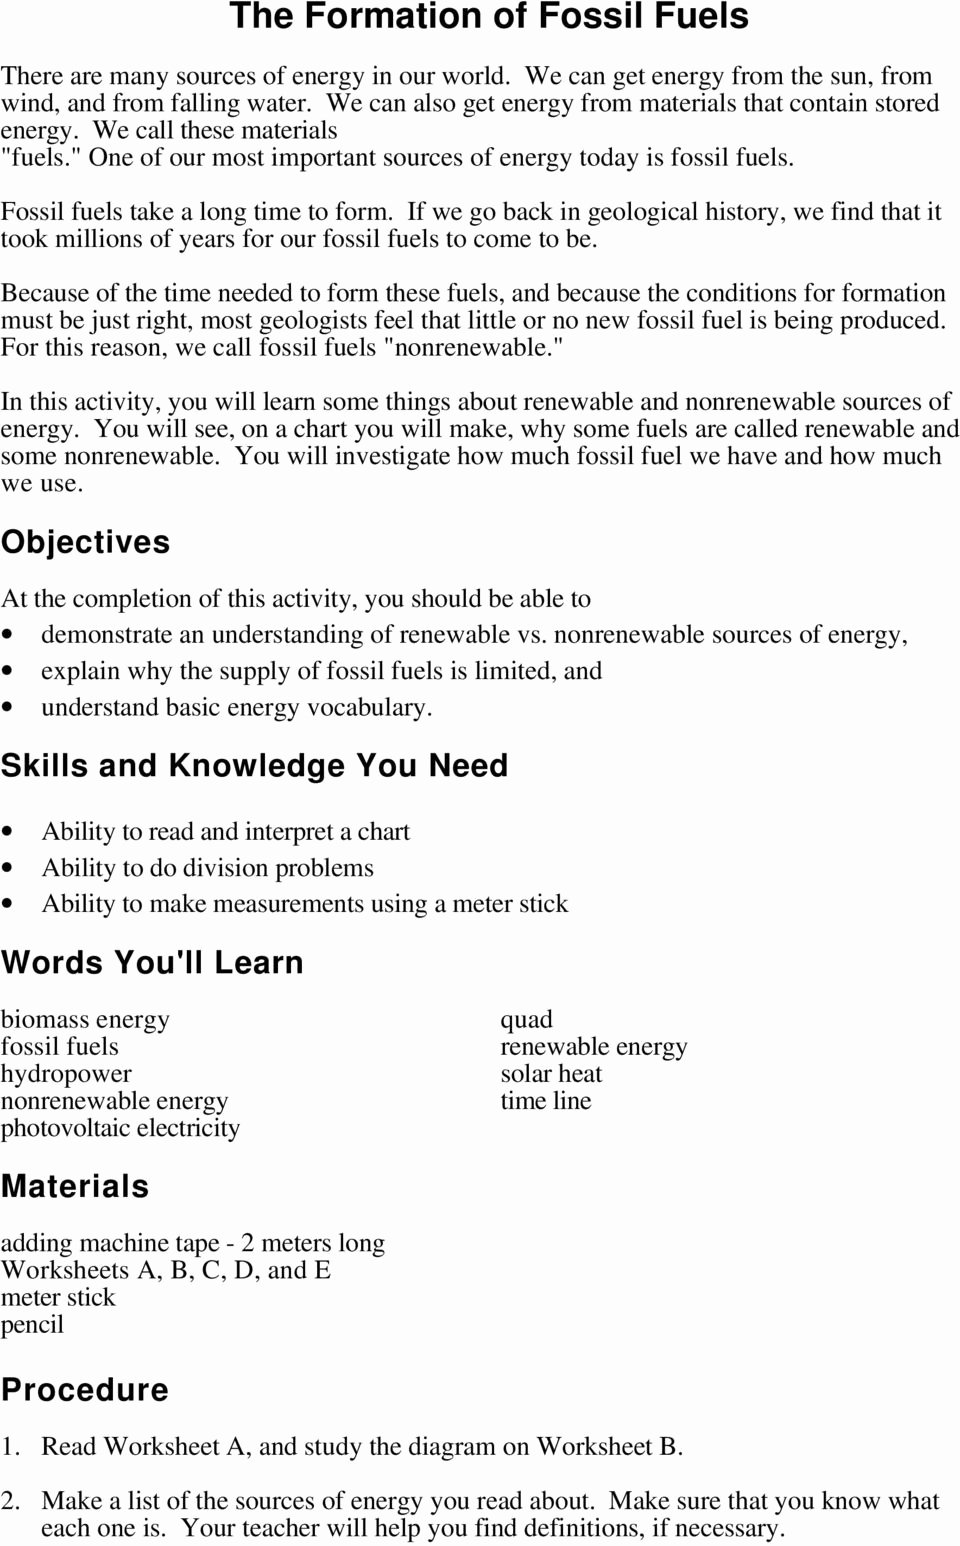 Fossil Fuels Worksheet Middle School Lovely the formation Of Fossil Fuels Pdf Free Download